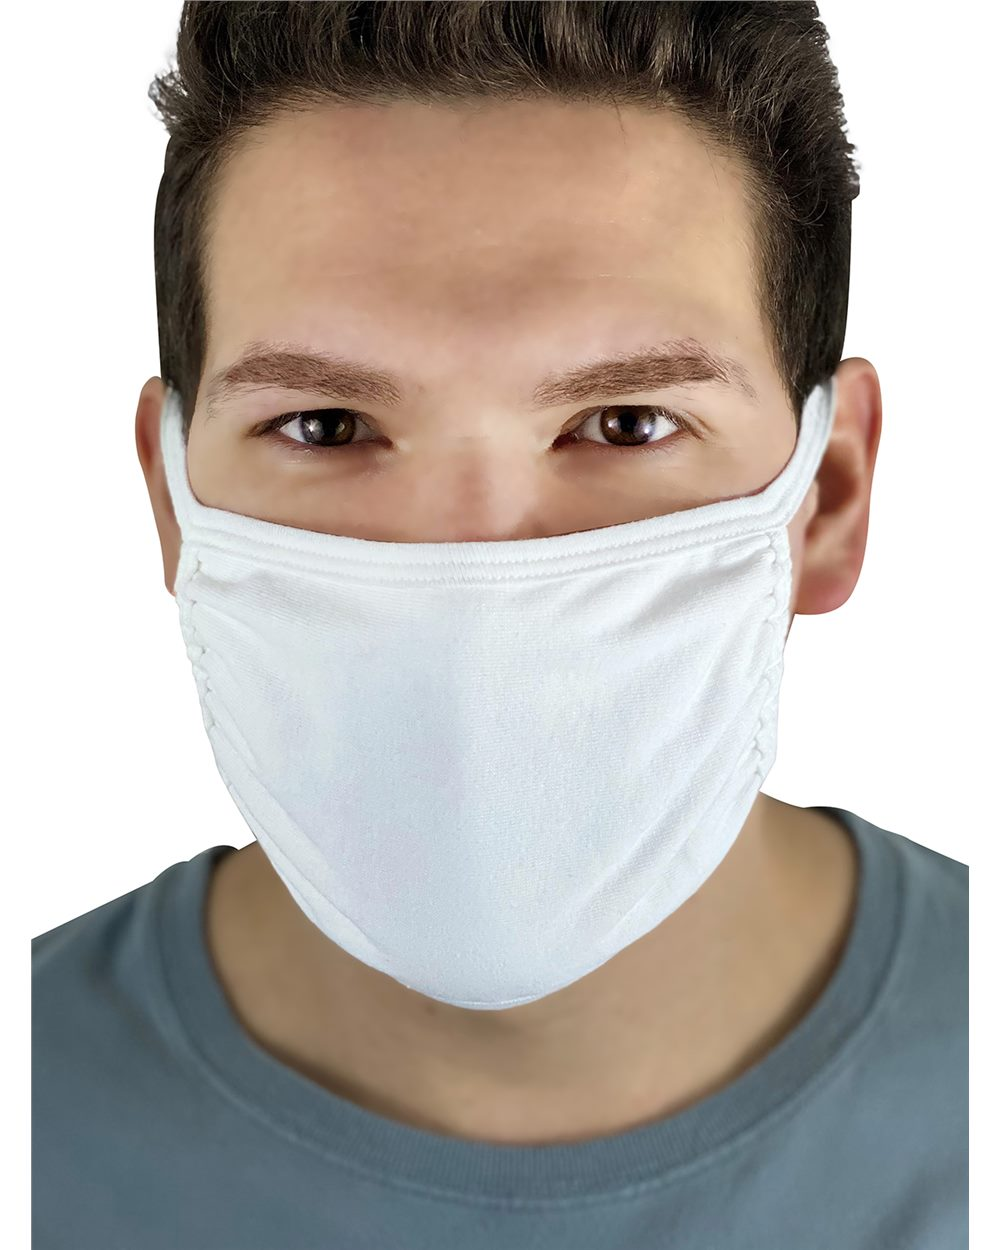 Fruit of the Loom 5PMask - Face Covering 5/PACK